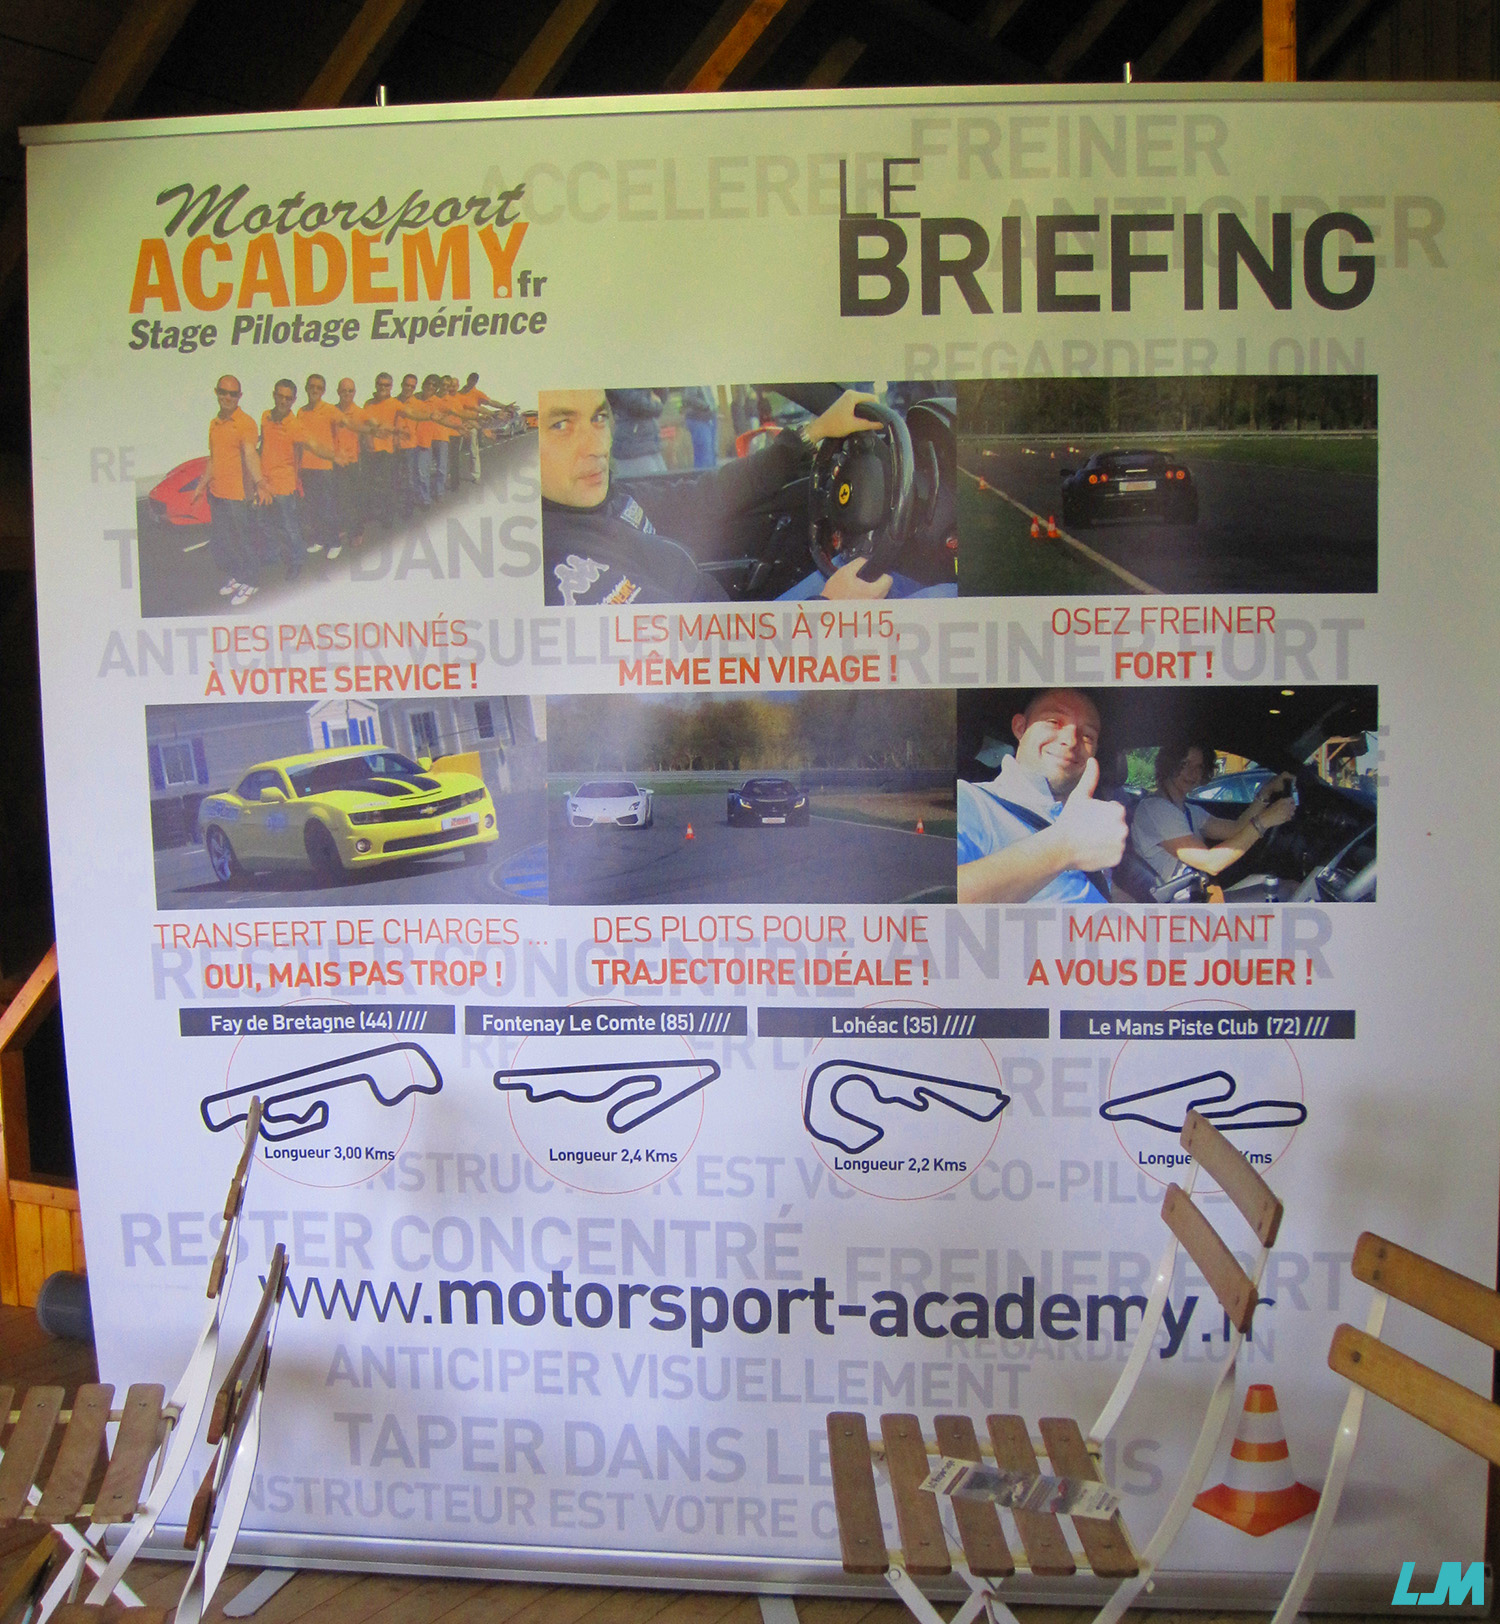 Briefing Motorsport Academy